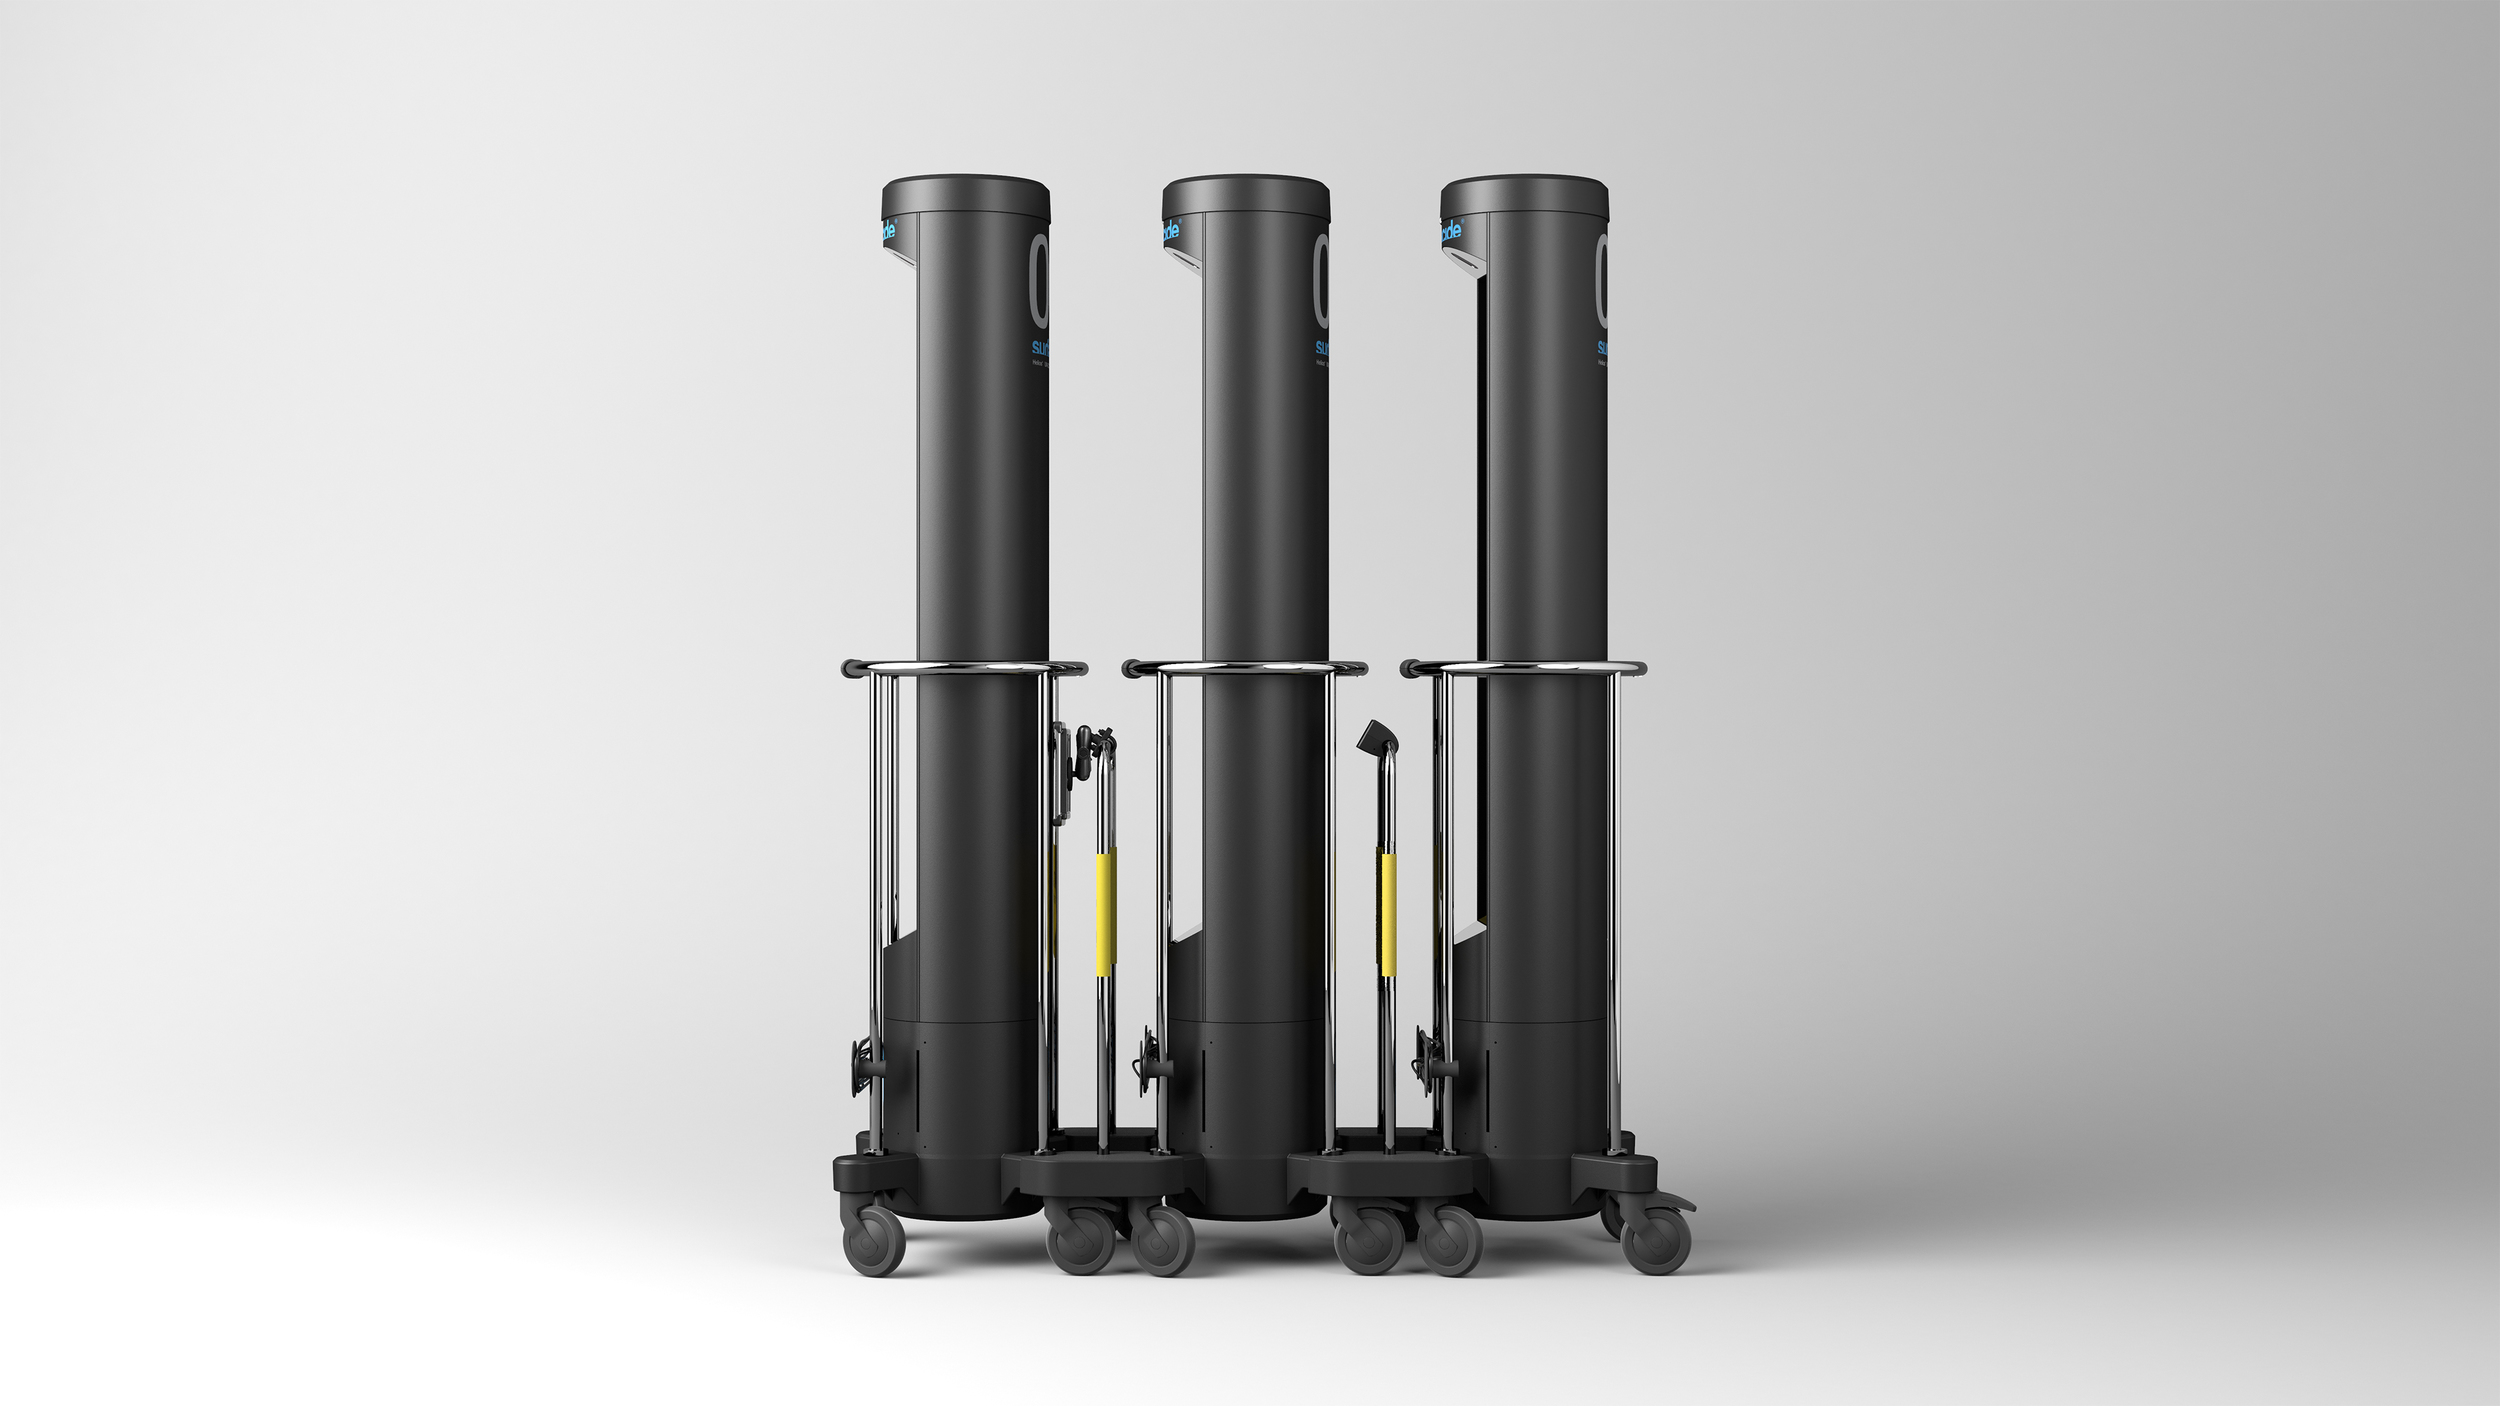 The Surfacide UV-C towers with motion sensor and control stand in train.